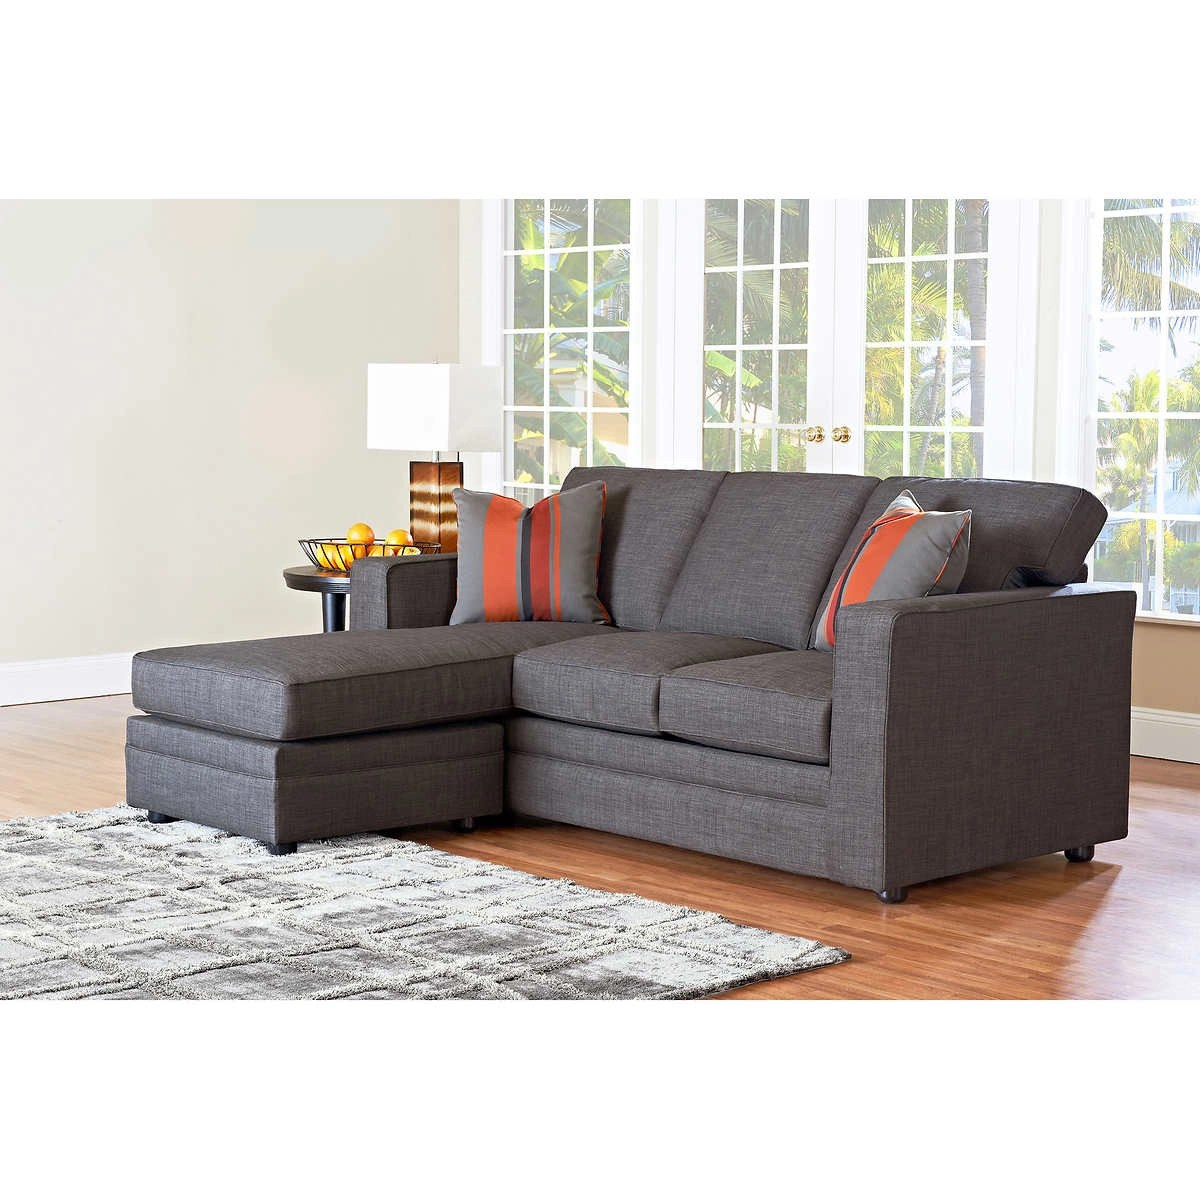 sofa bed and chaise el dorado furniture leather sectional sleeper with ideas on foter 1